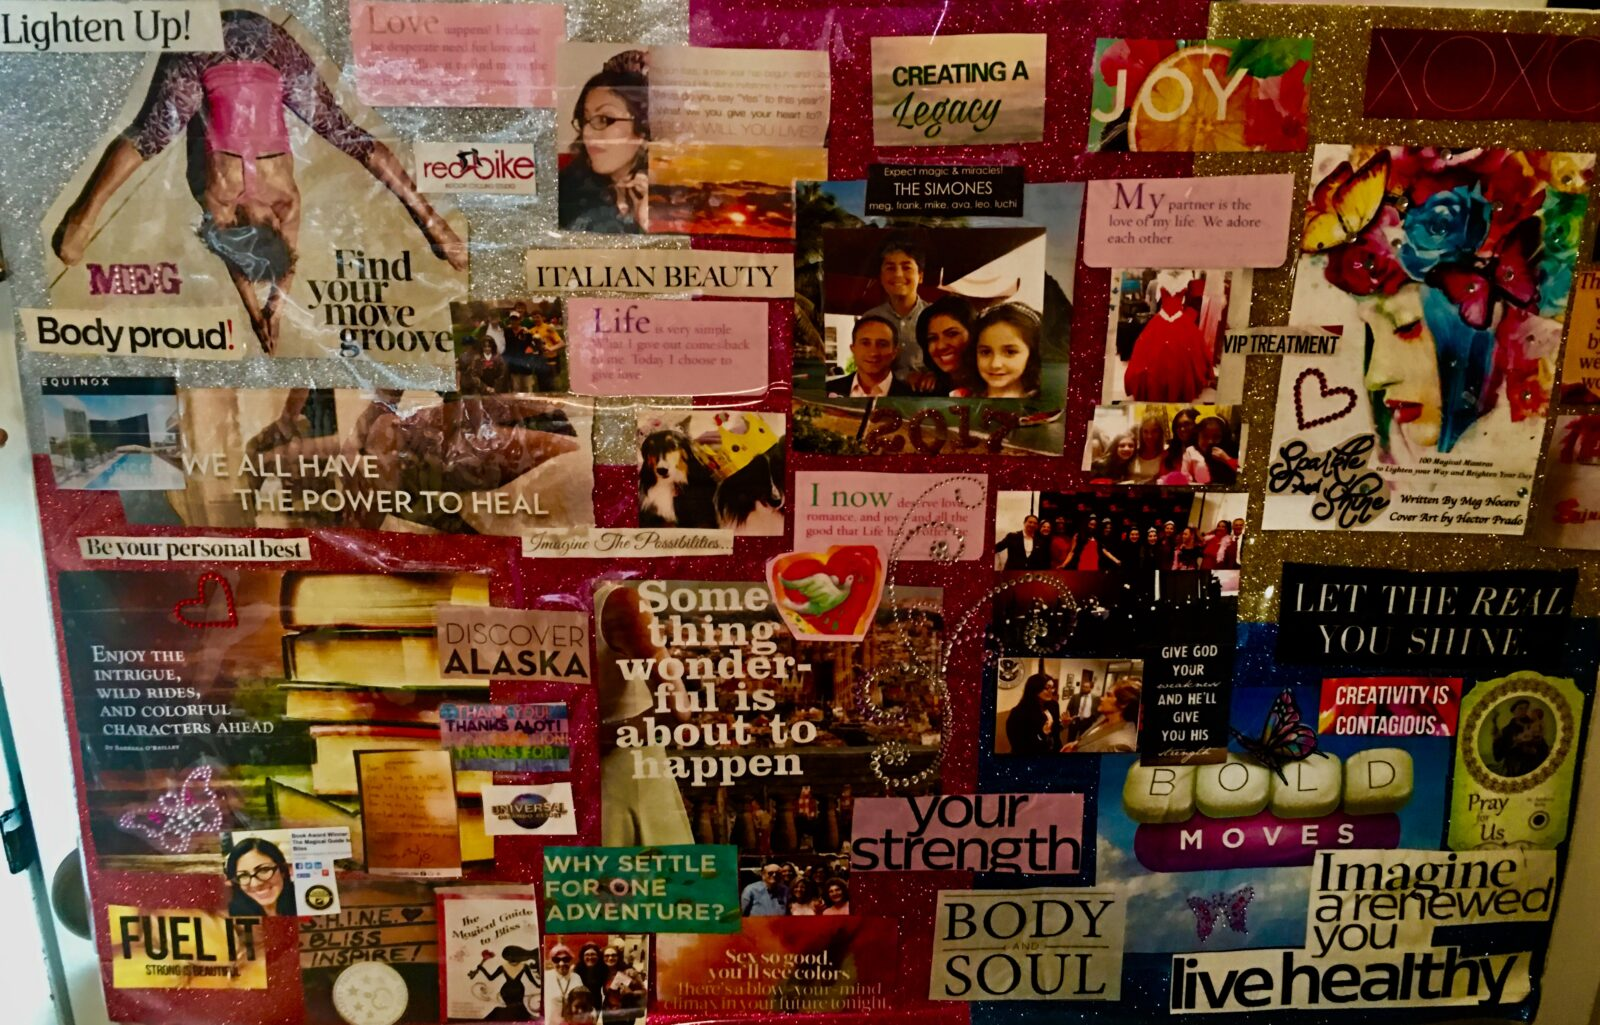 It is time to get your house in order, vision boards are a tool to help you commit to take the next step to your personal freedom!